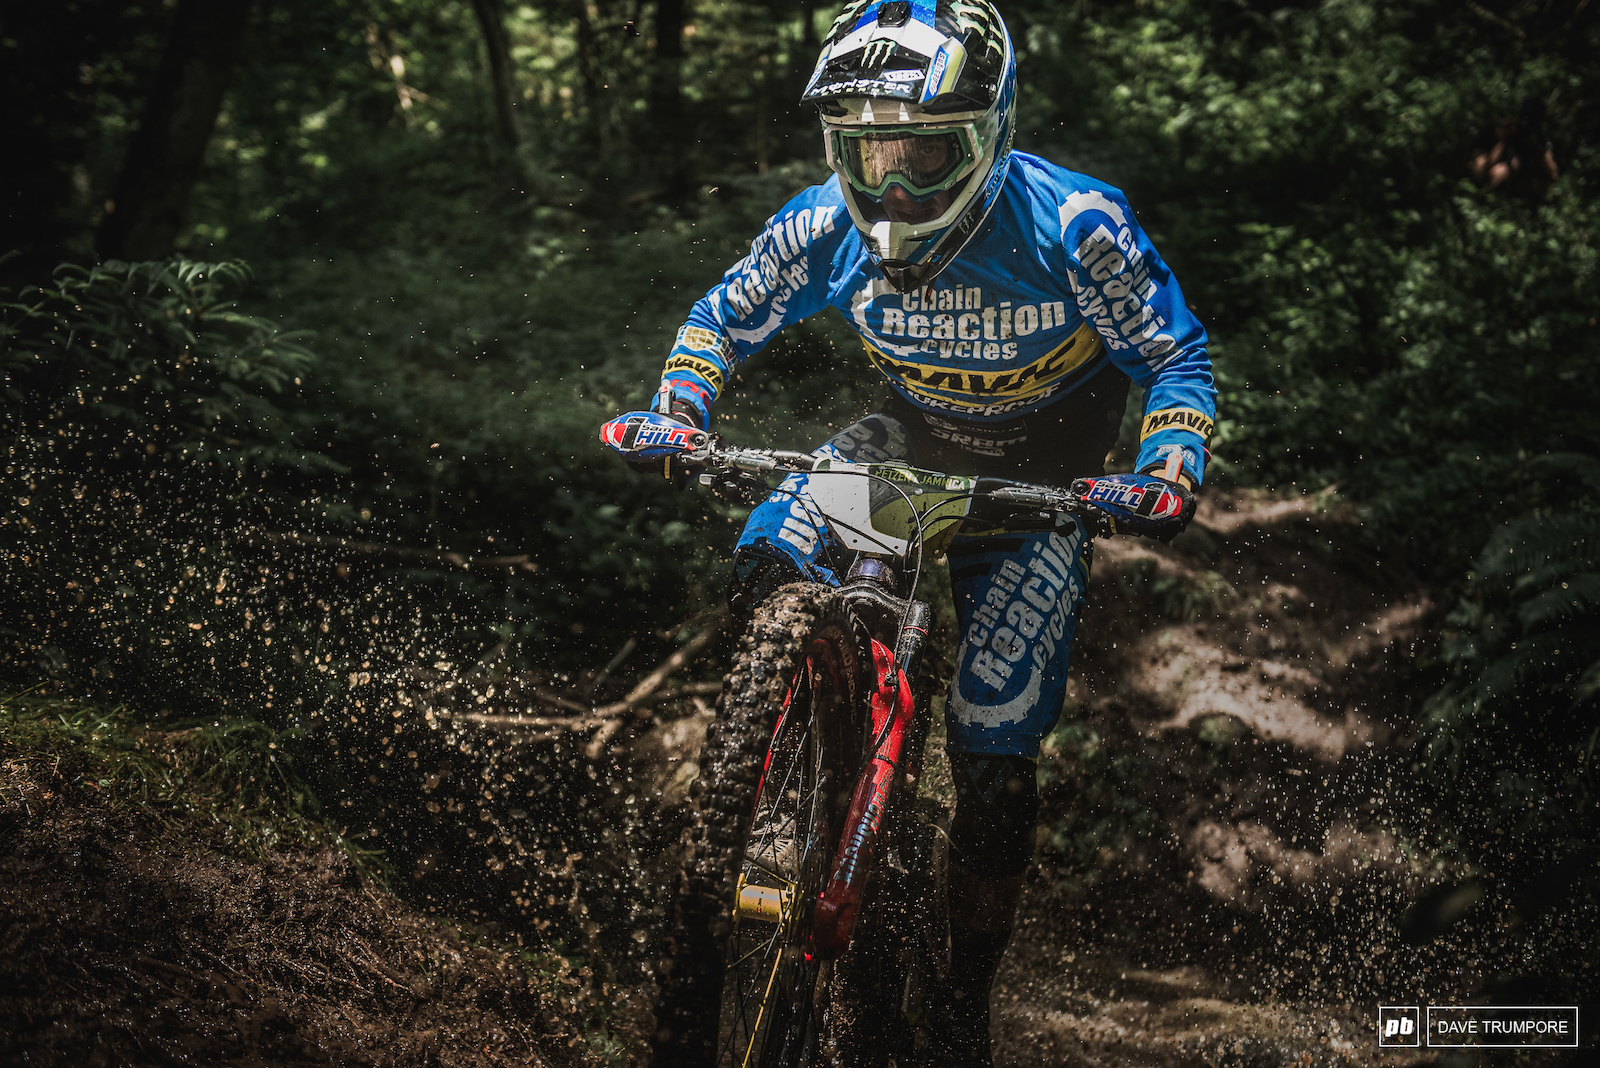 After an off weekend in round three Sam Hill is back at the front and leads Martin Maes into day two by 9 seconds.